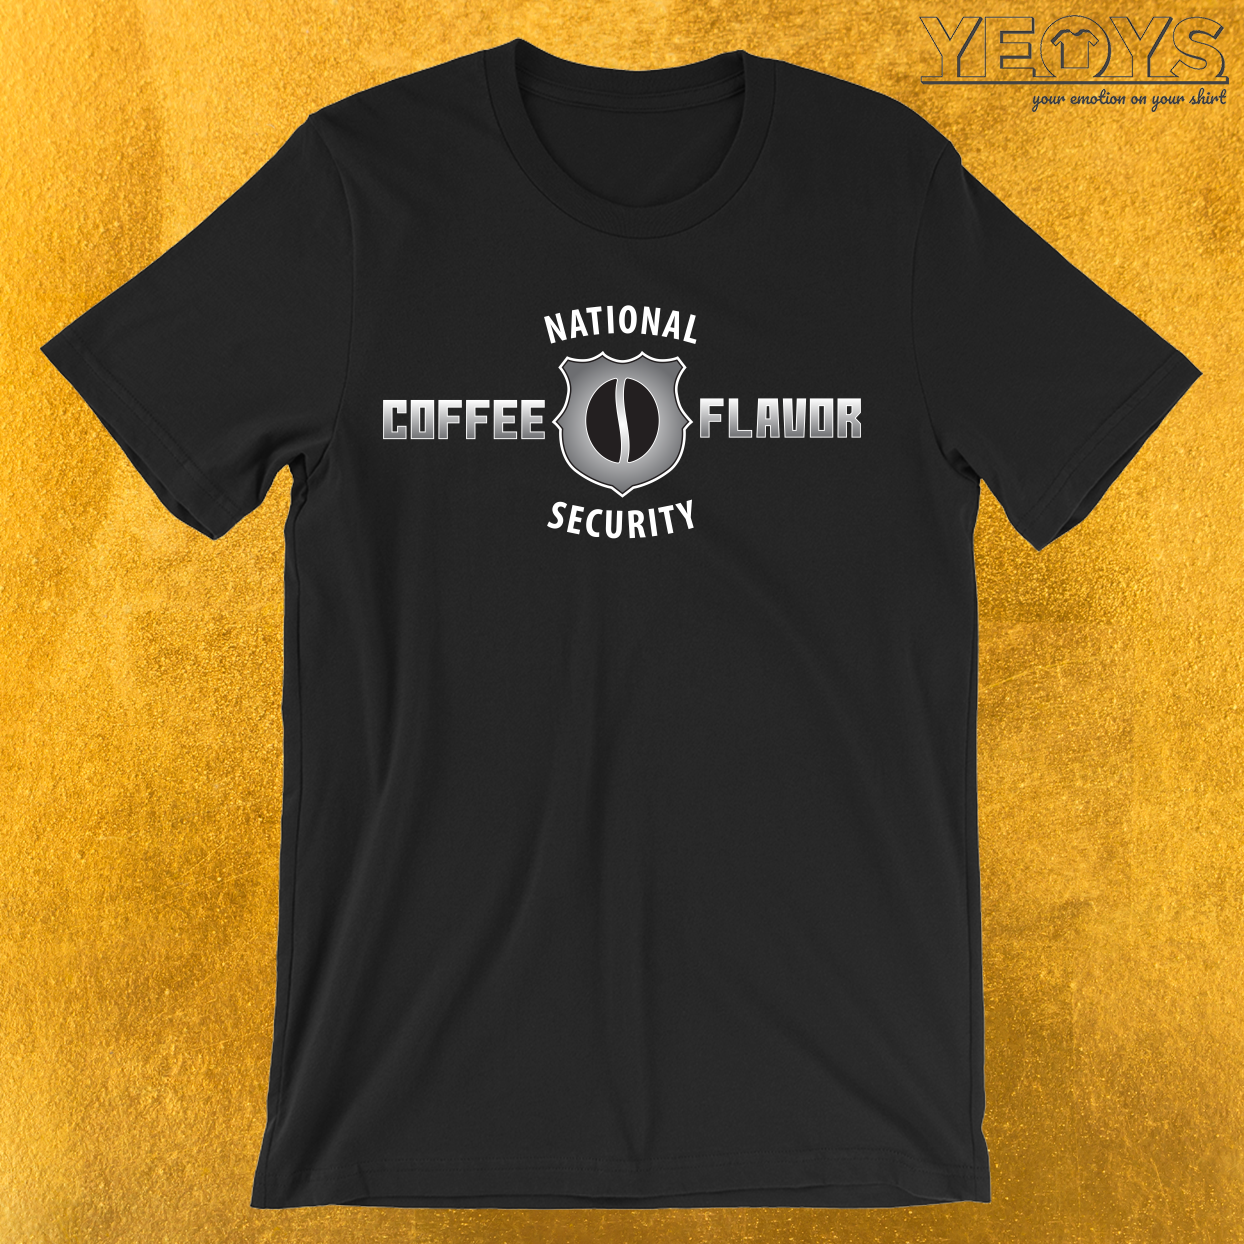 National Coffee Flavor Security T-Shirt